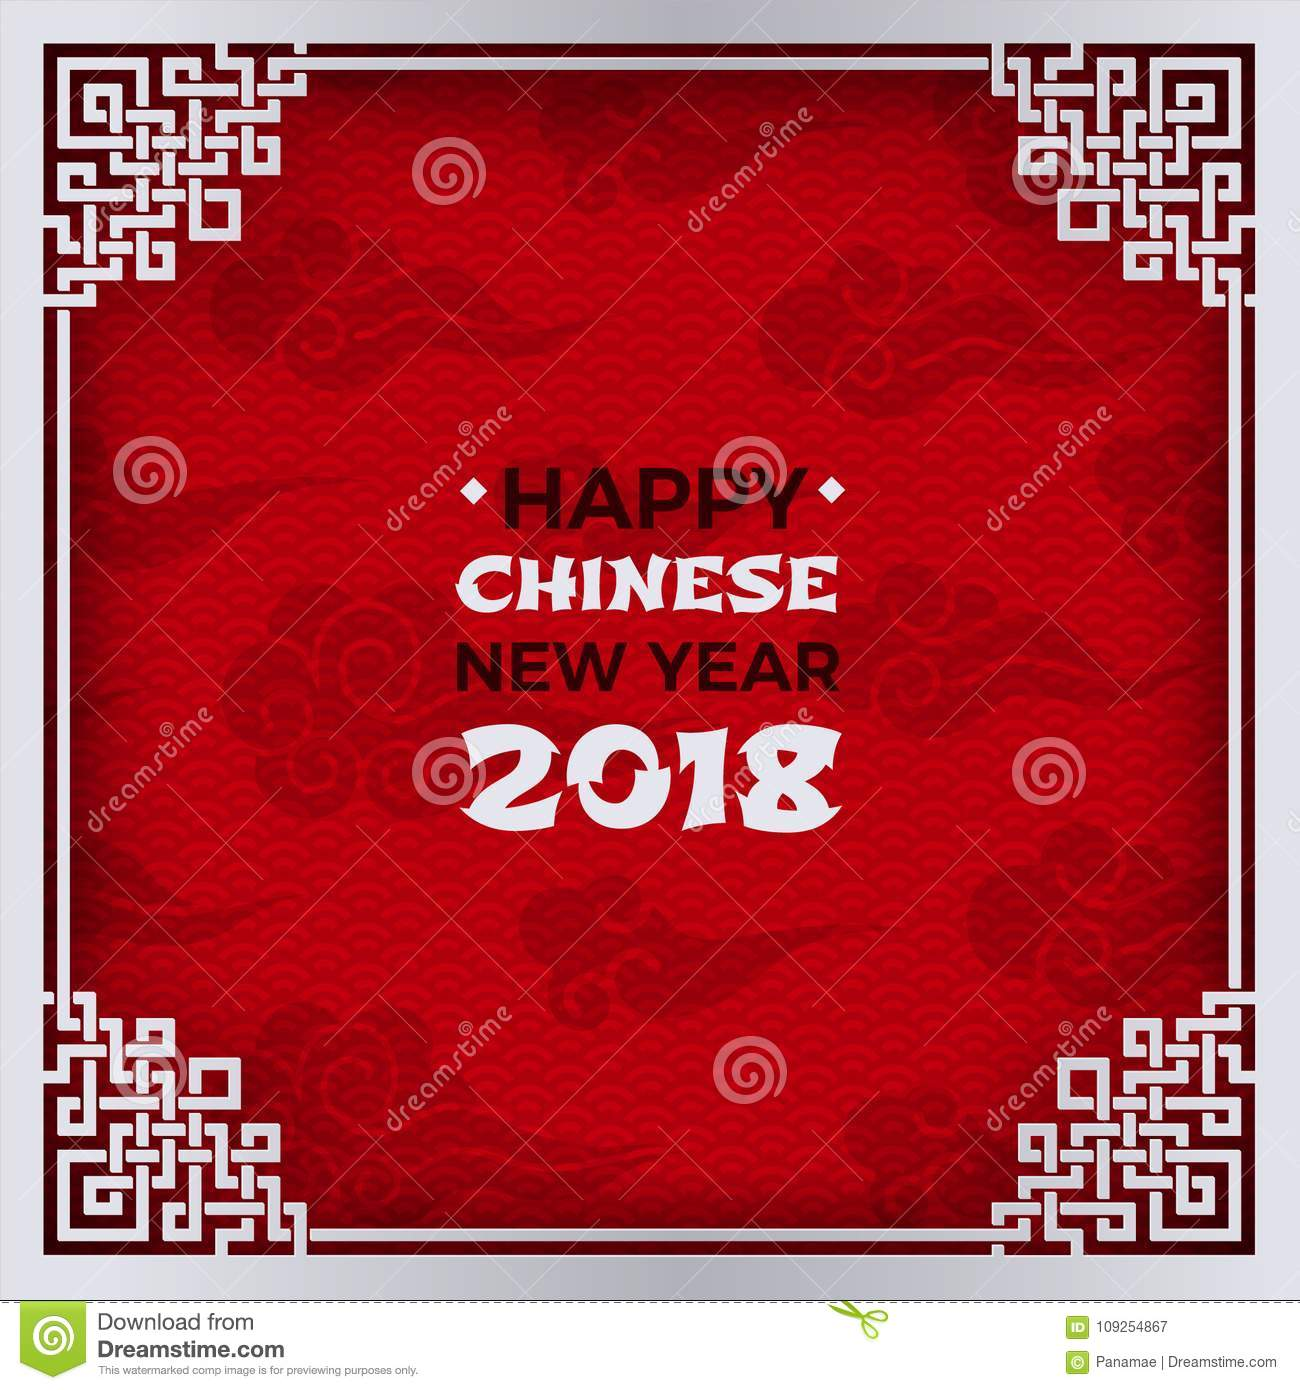 chinese new year 2018 banner white tracery ornate frame with congratulation text on red pattern